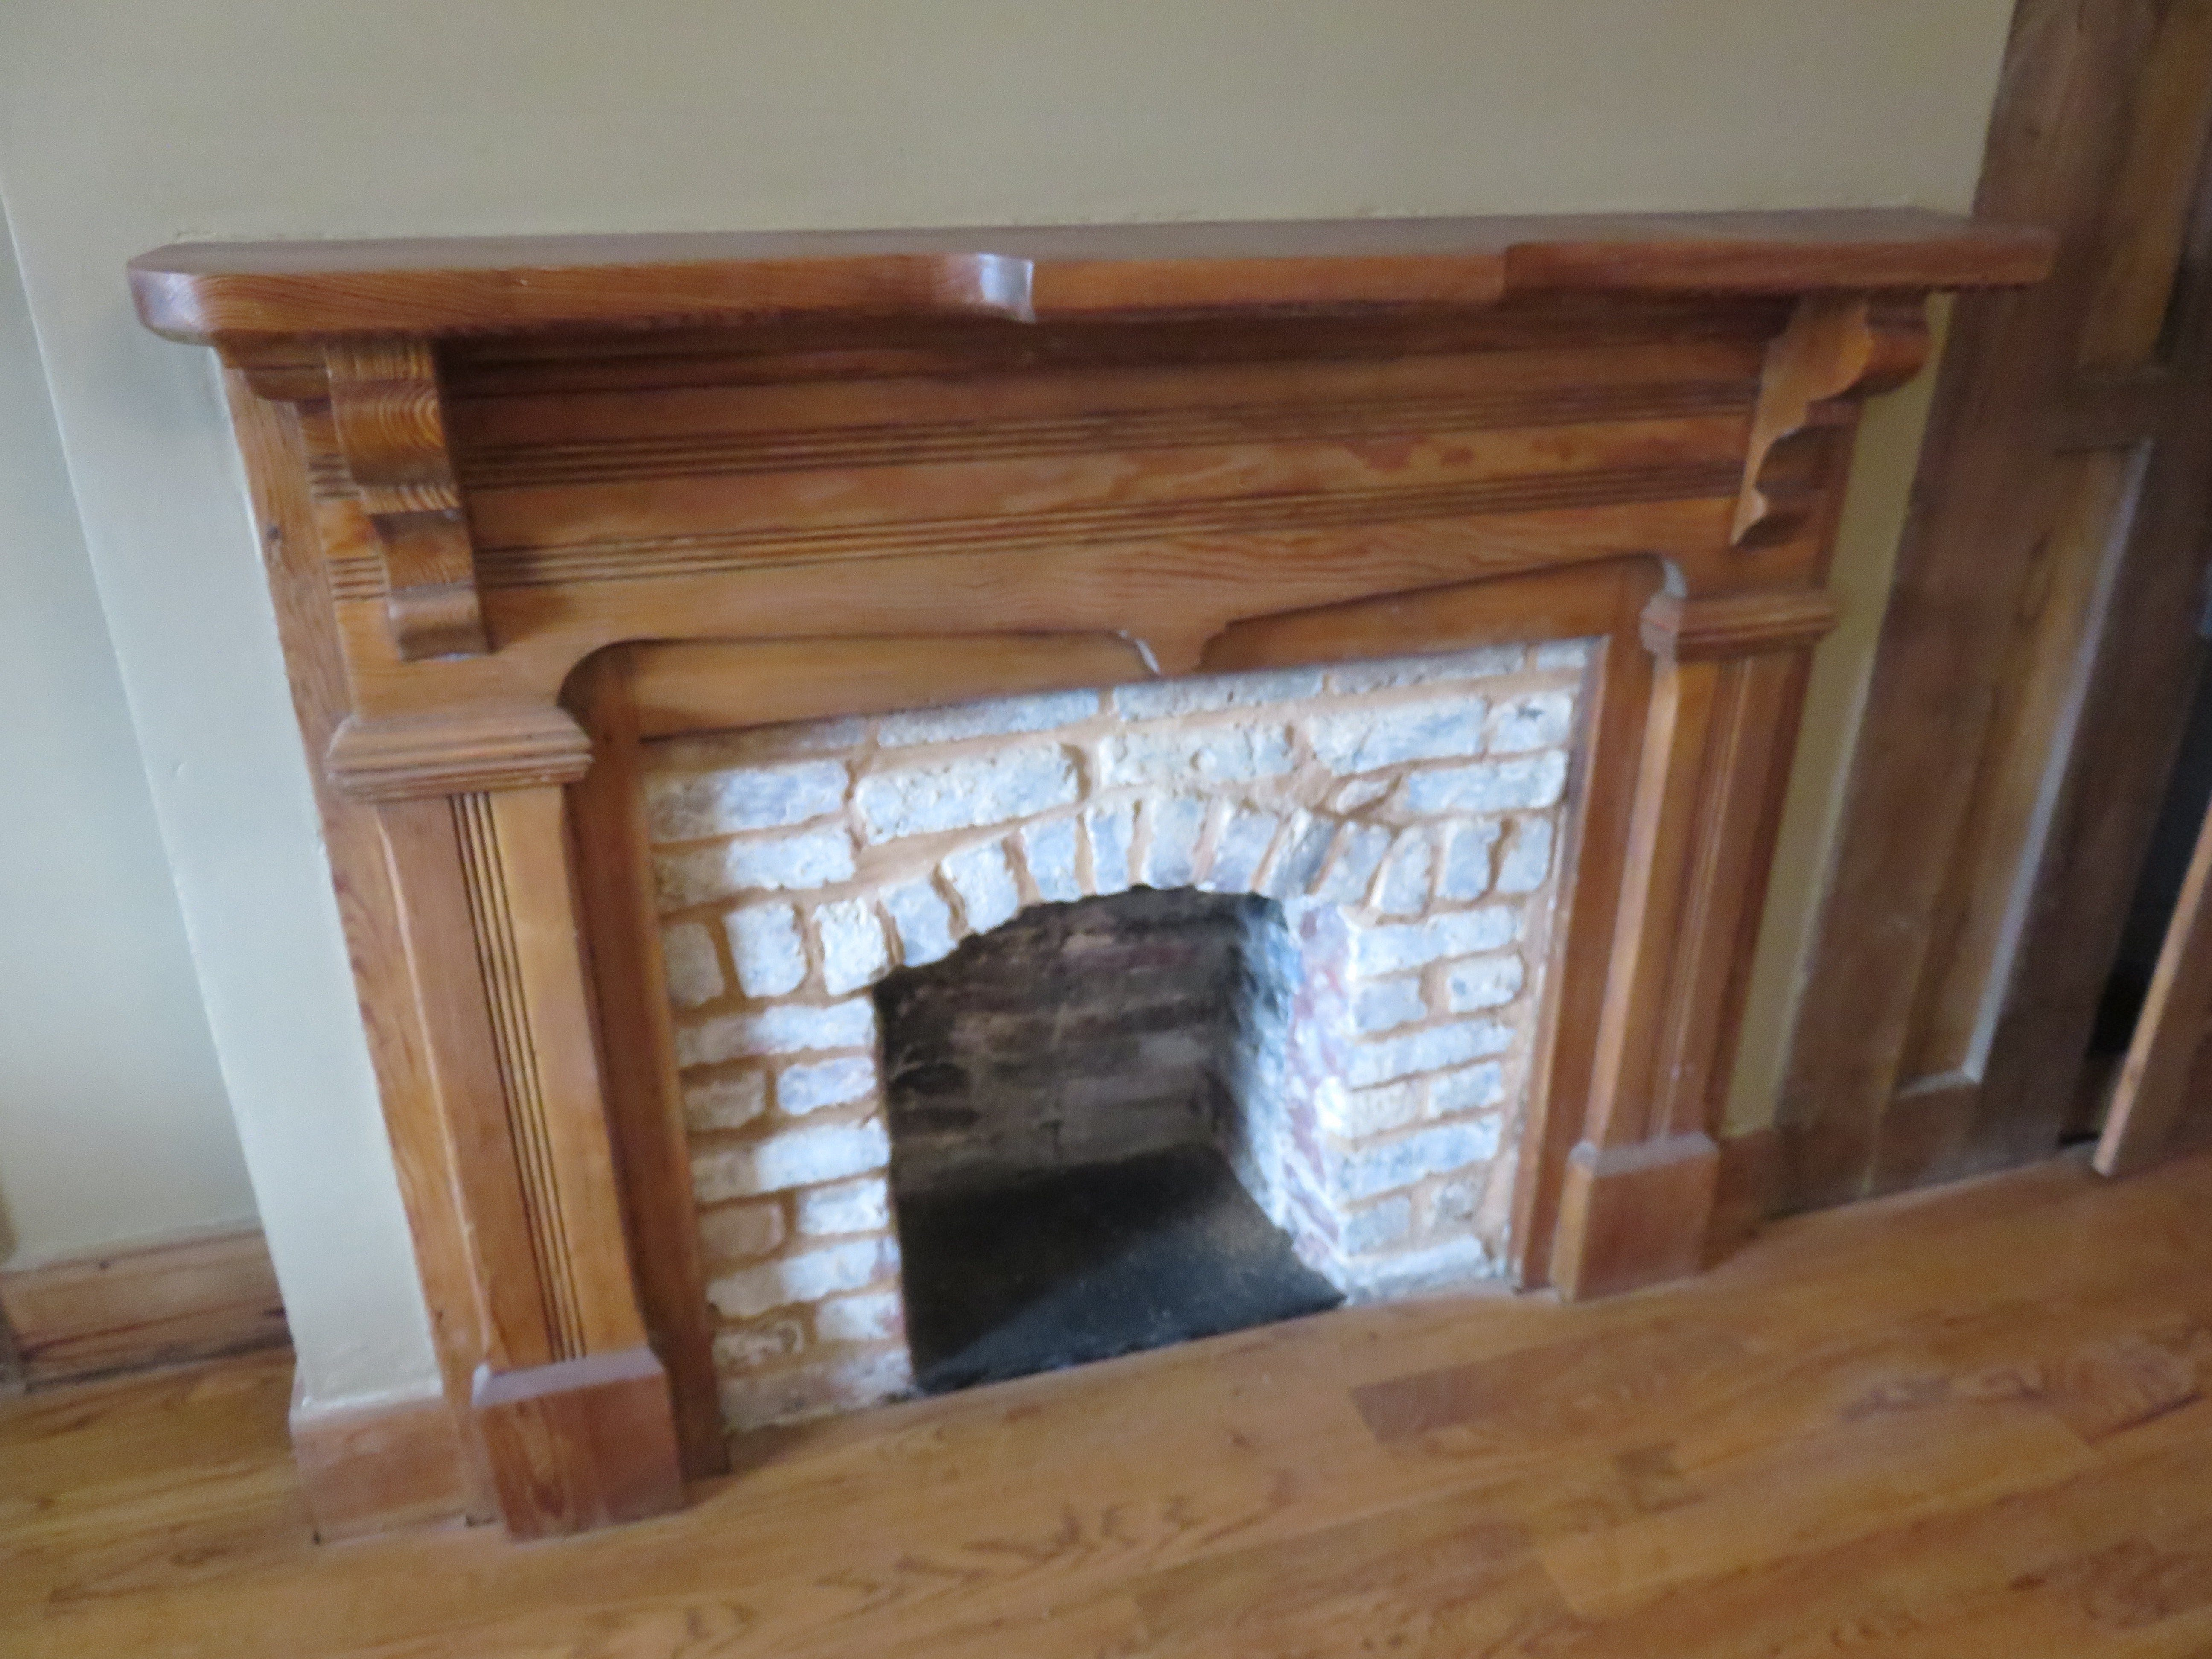 One of first-floor fireplaces and vintage mantels.